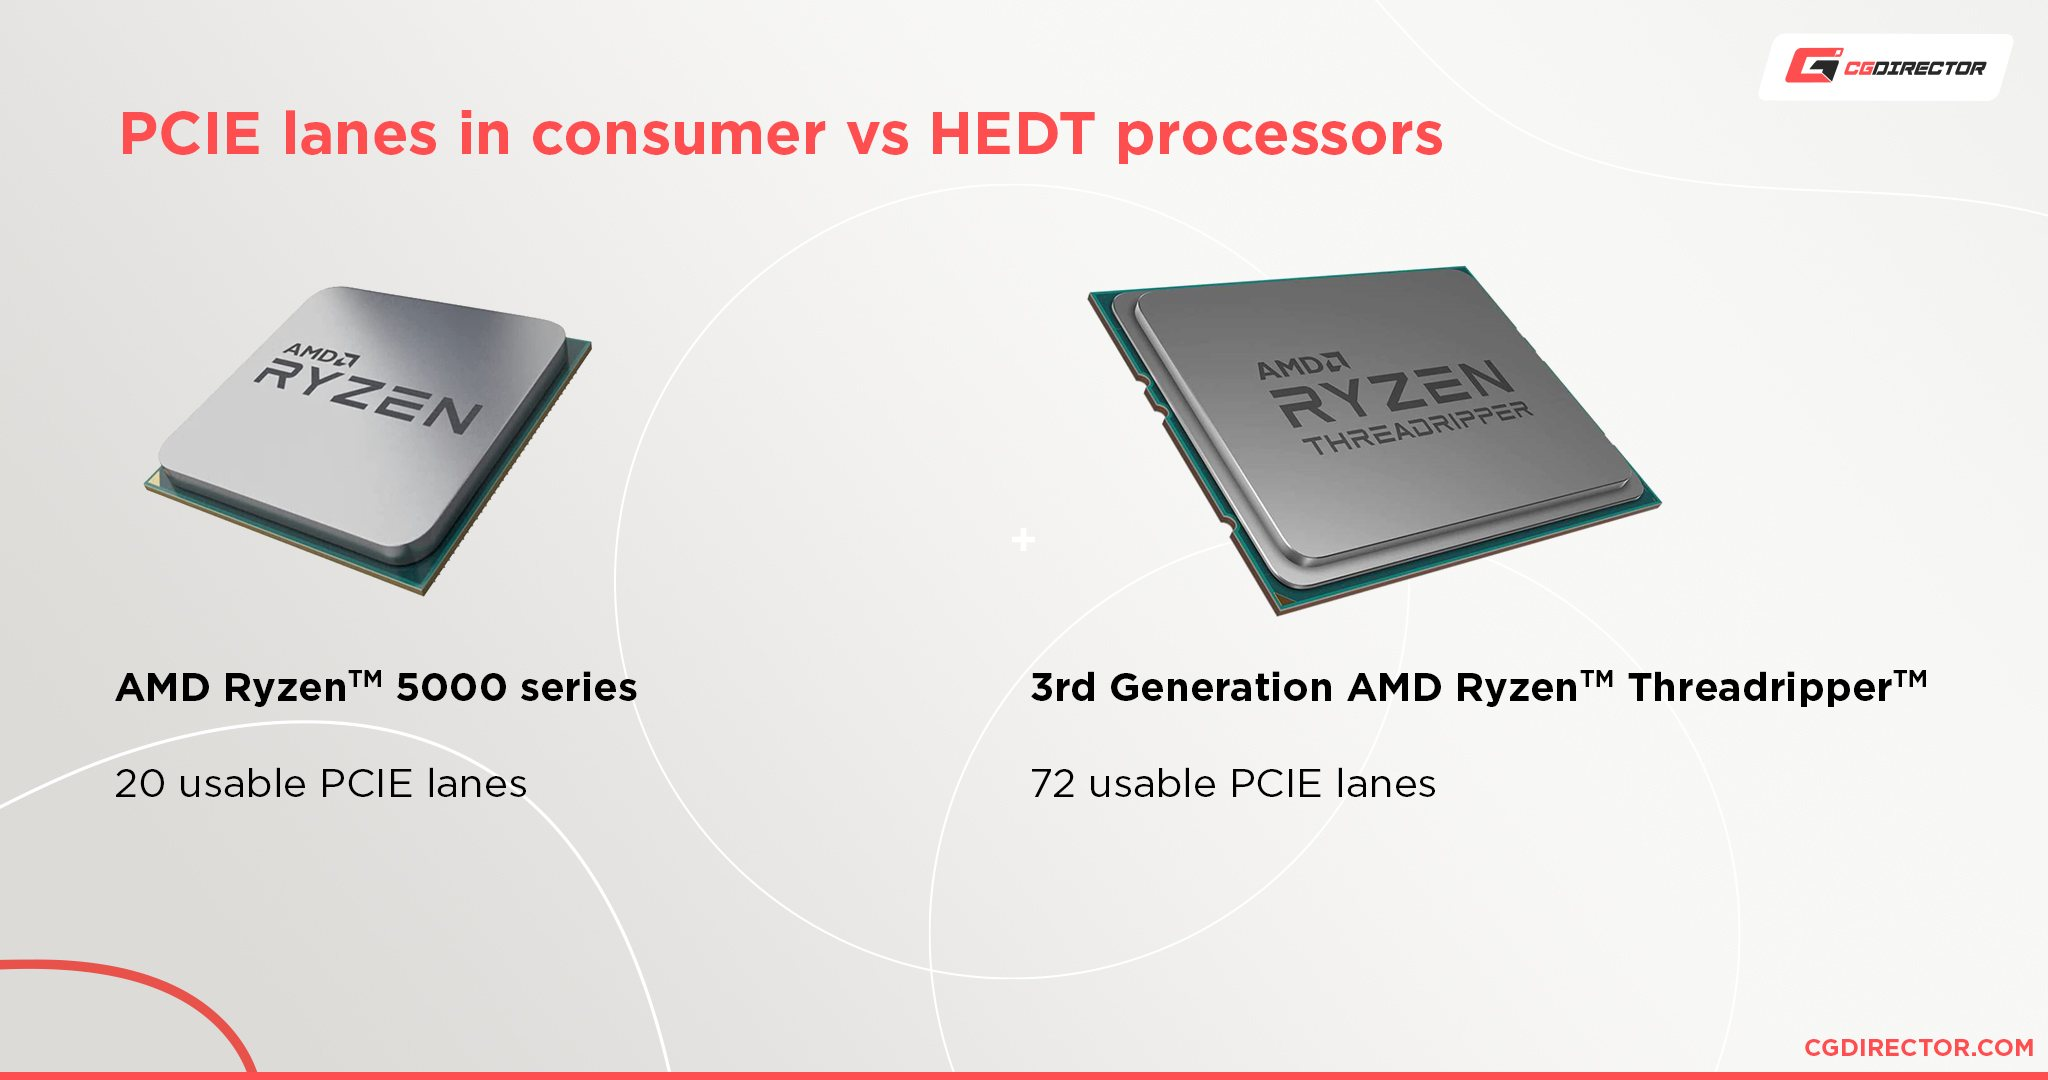 PCIE lanes in consumer vs HEDT processors